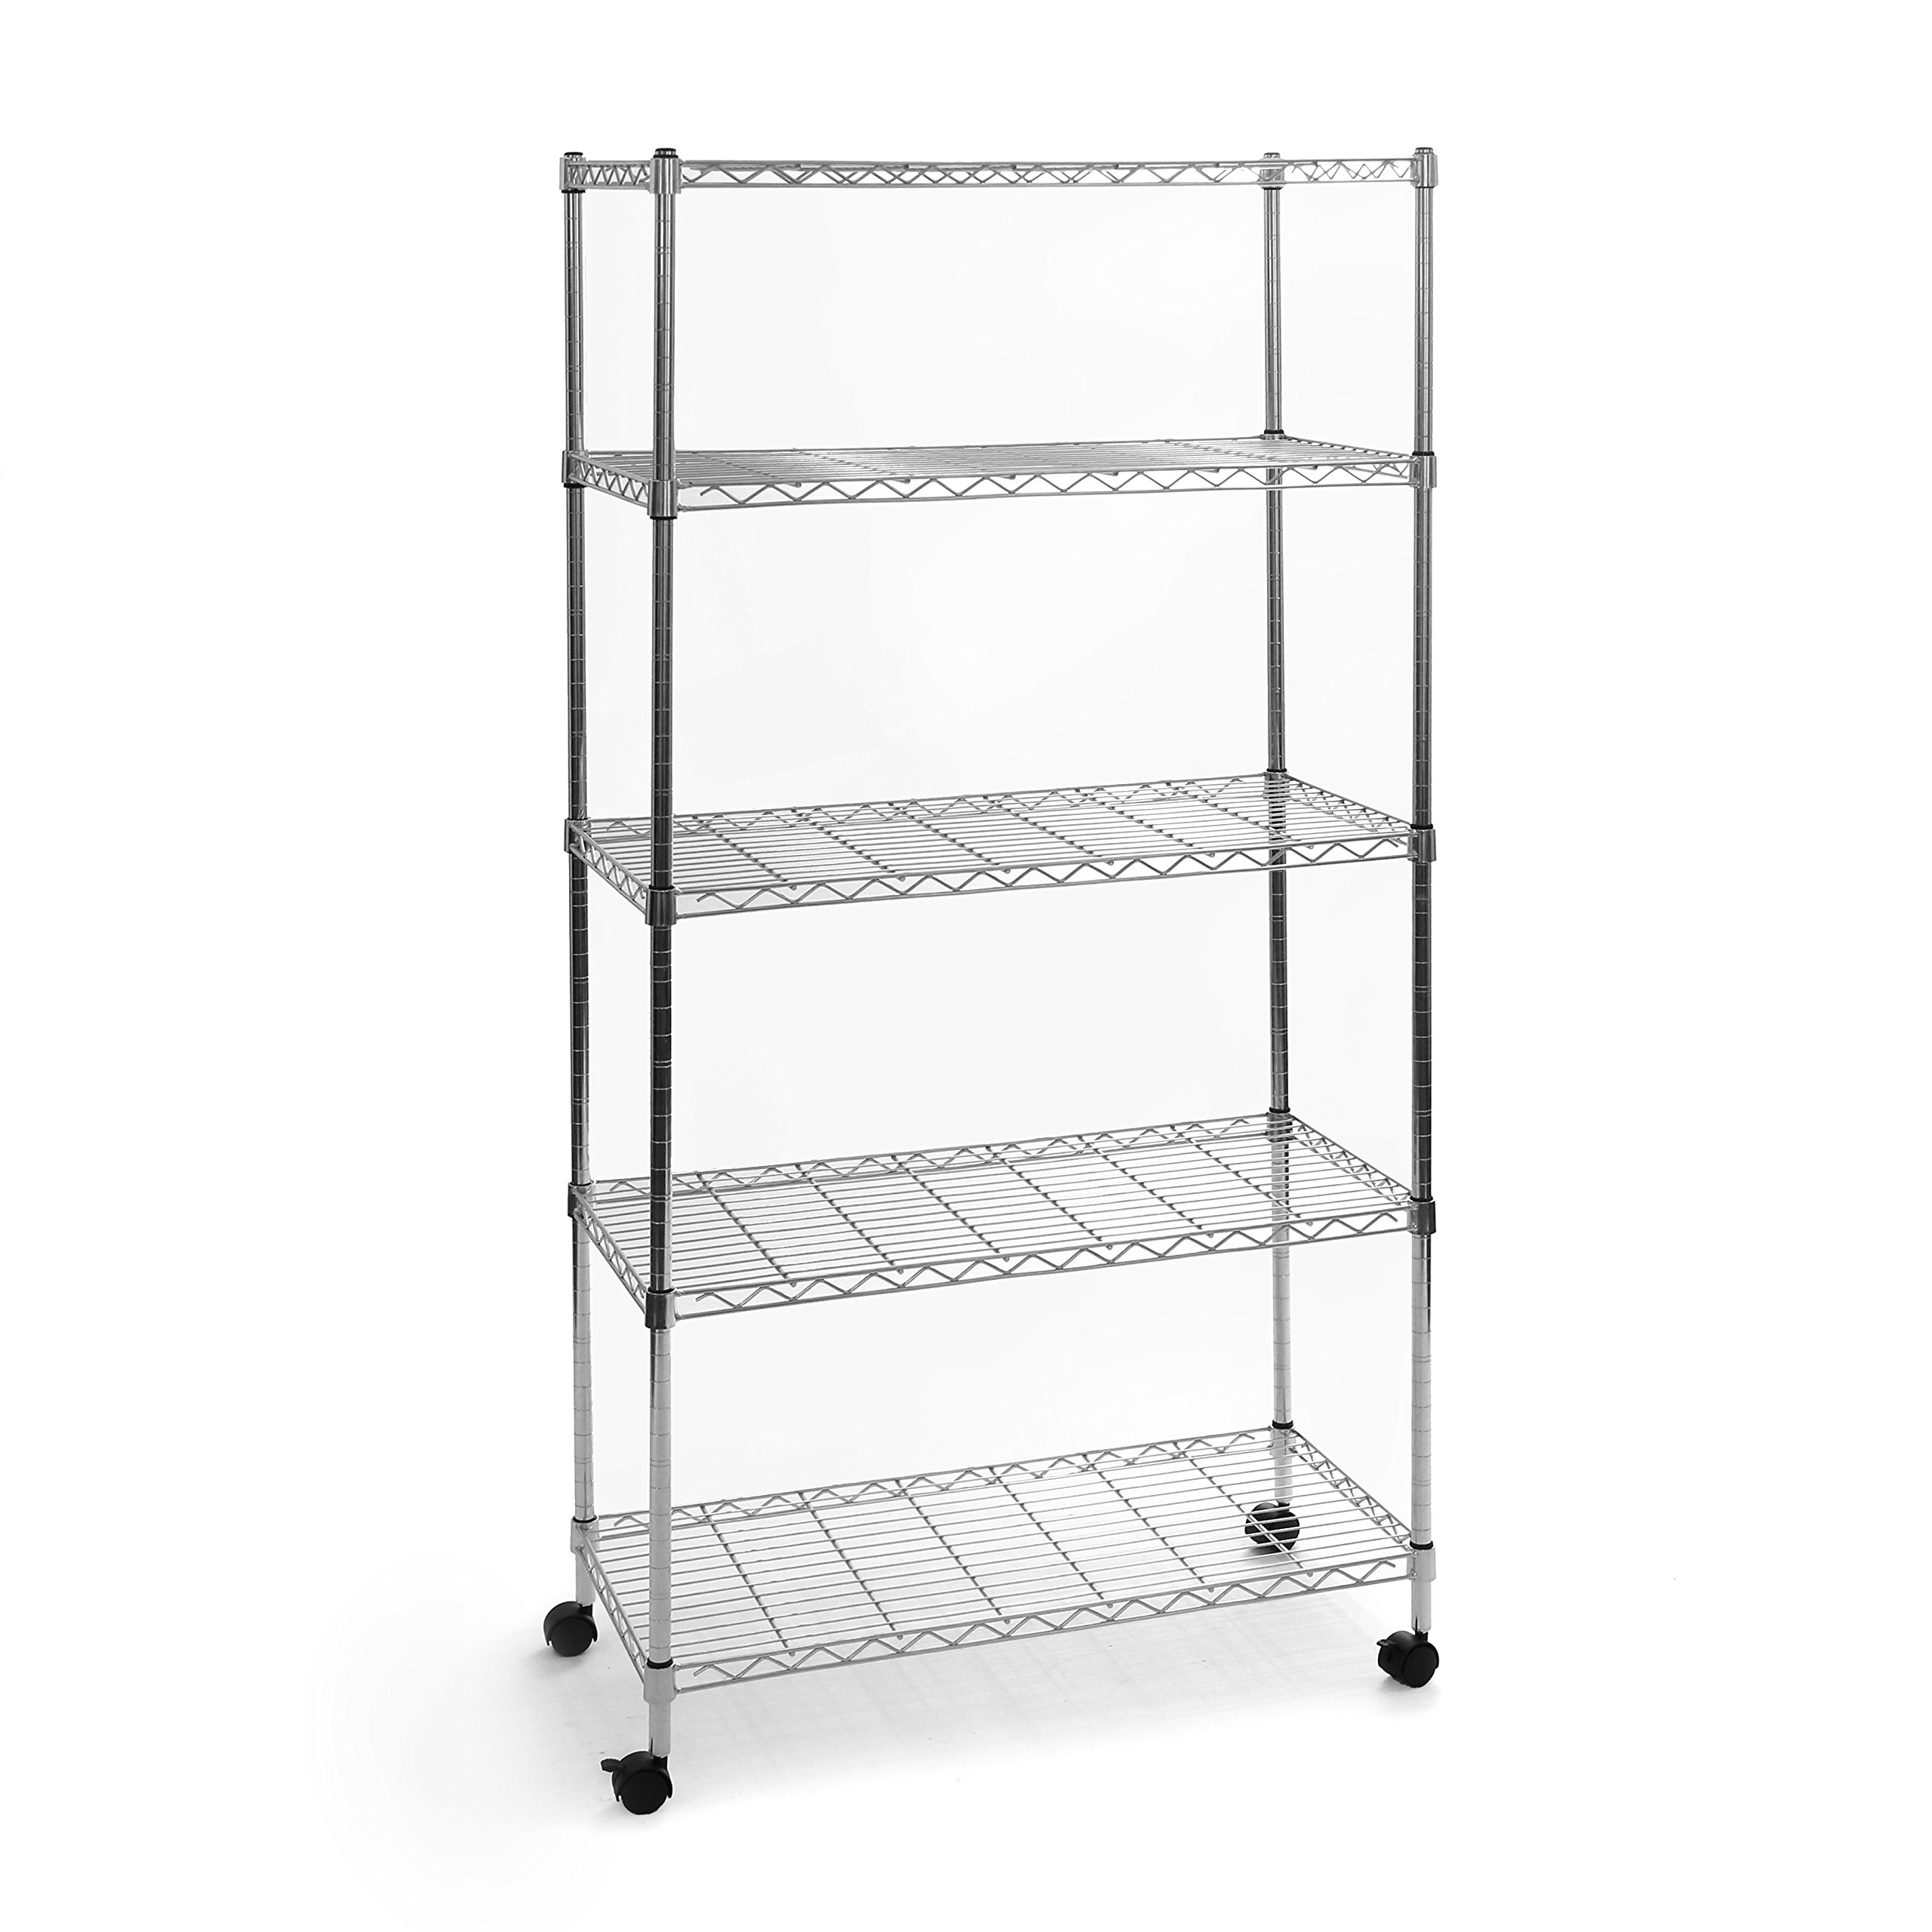 Seville Classics 5-Tier Steel Wire Shelving with Wheels, 30'' W x 14'' D x 60'' H, Plated Steel by Seville Classics